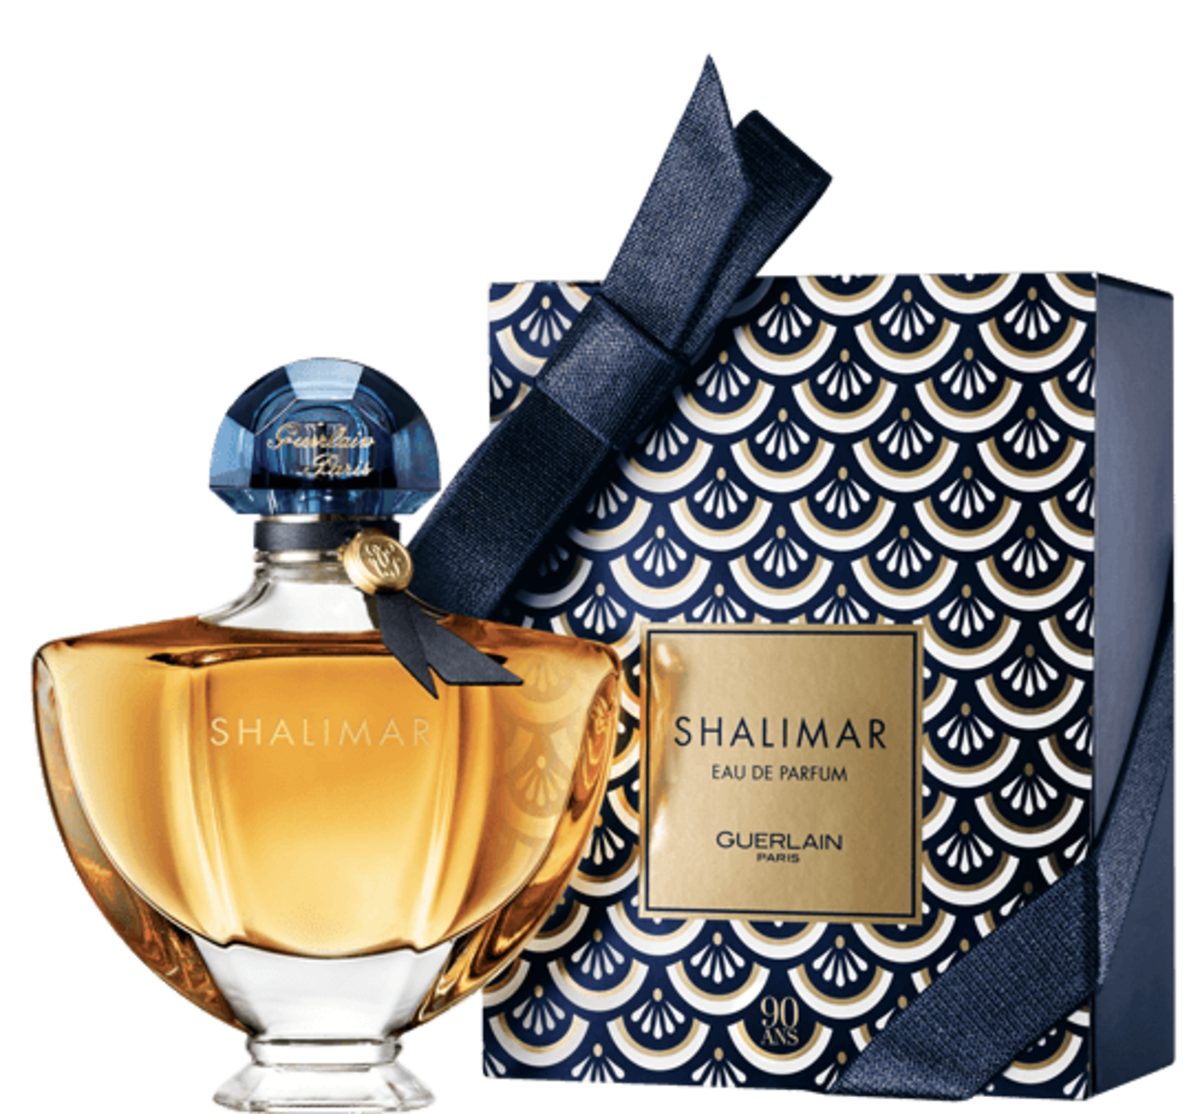 A perfume created in  1925 by Jacques Guerlain, Shalimar  Perfume is the perfect gift for women who love to leave an unforgetable trail behind them.